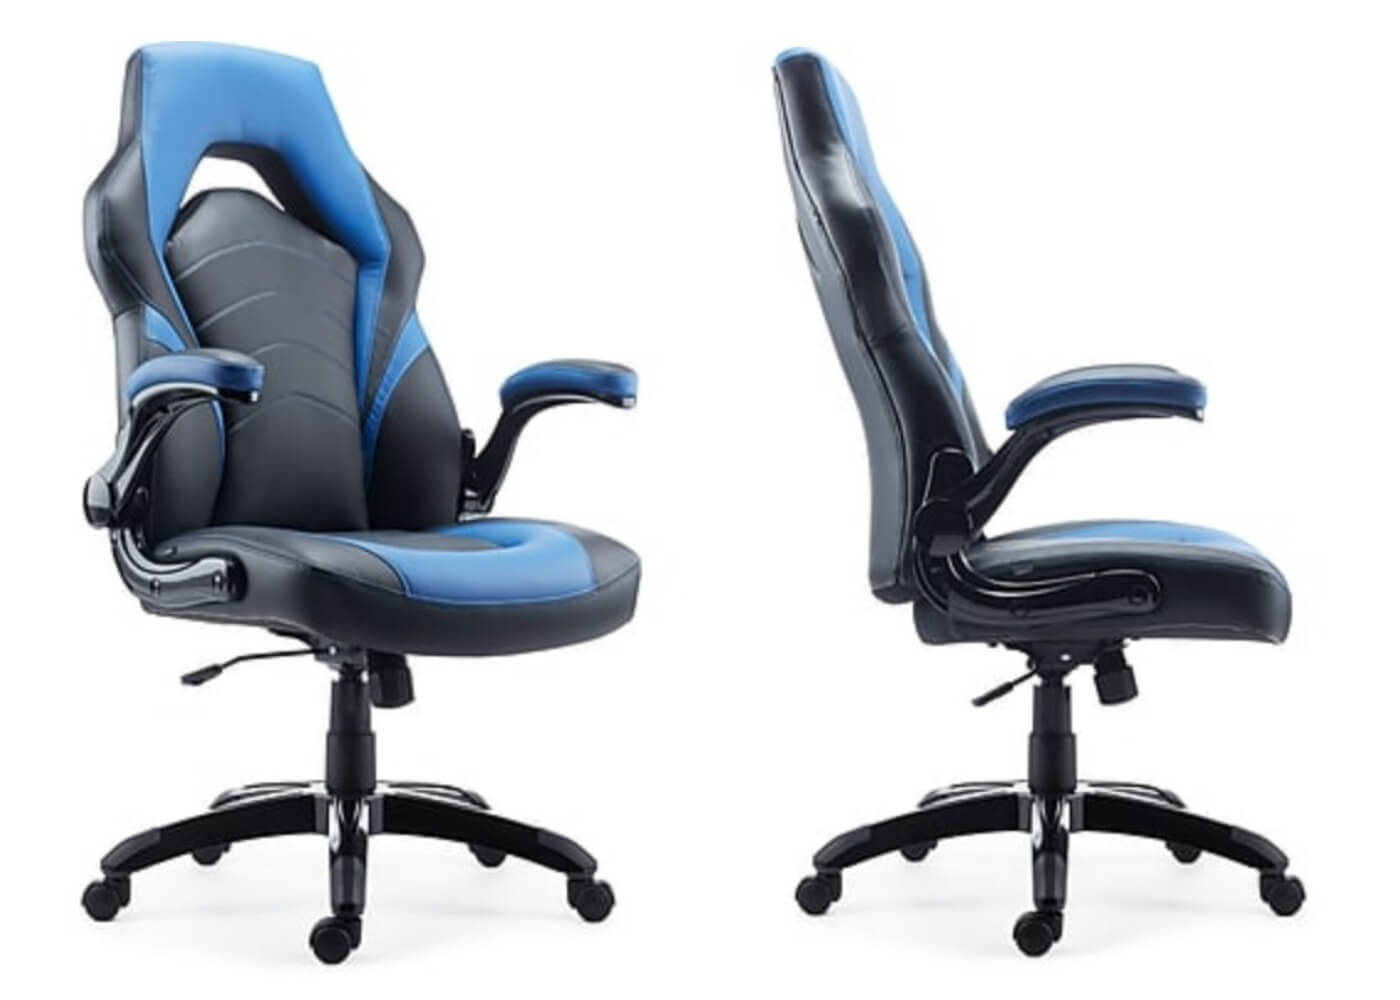 Office Chairs At Staples Staples Gaming Chair Just 99 Free Shipping Orig 199 Living